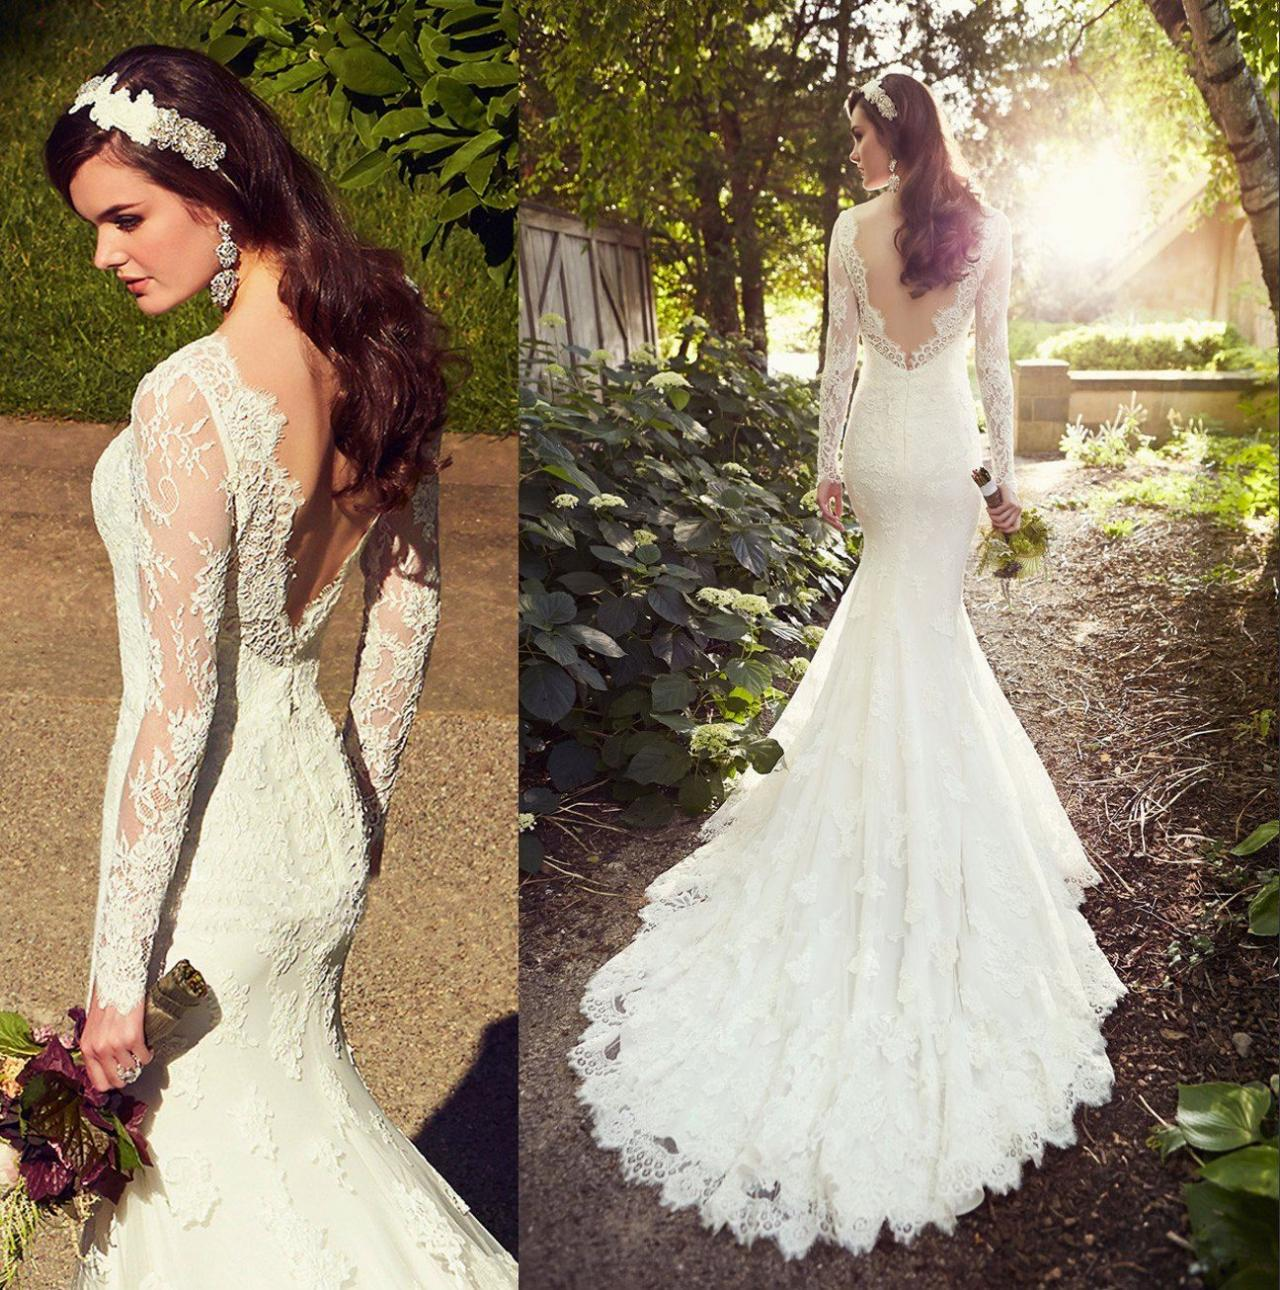 white wedding dresses long sleeves wedding gown lace wedding gowns ball gown bridal dress princess w wedding dresses long train White Wedding Dresses Long Sleeves Wedding Gown Lace Wedding Gowns Ball Gown Bridal Dress Princess Wedding Dress Beautiful Brides Dress With Long Train